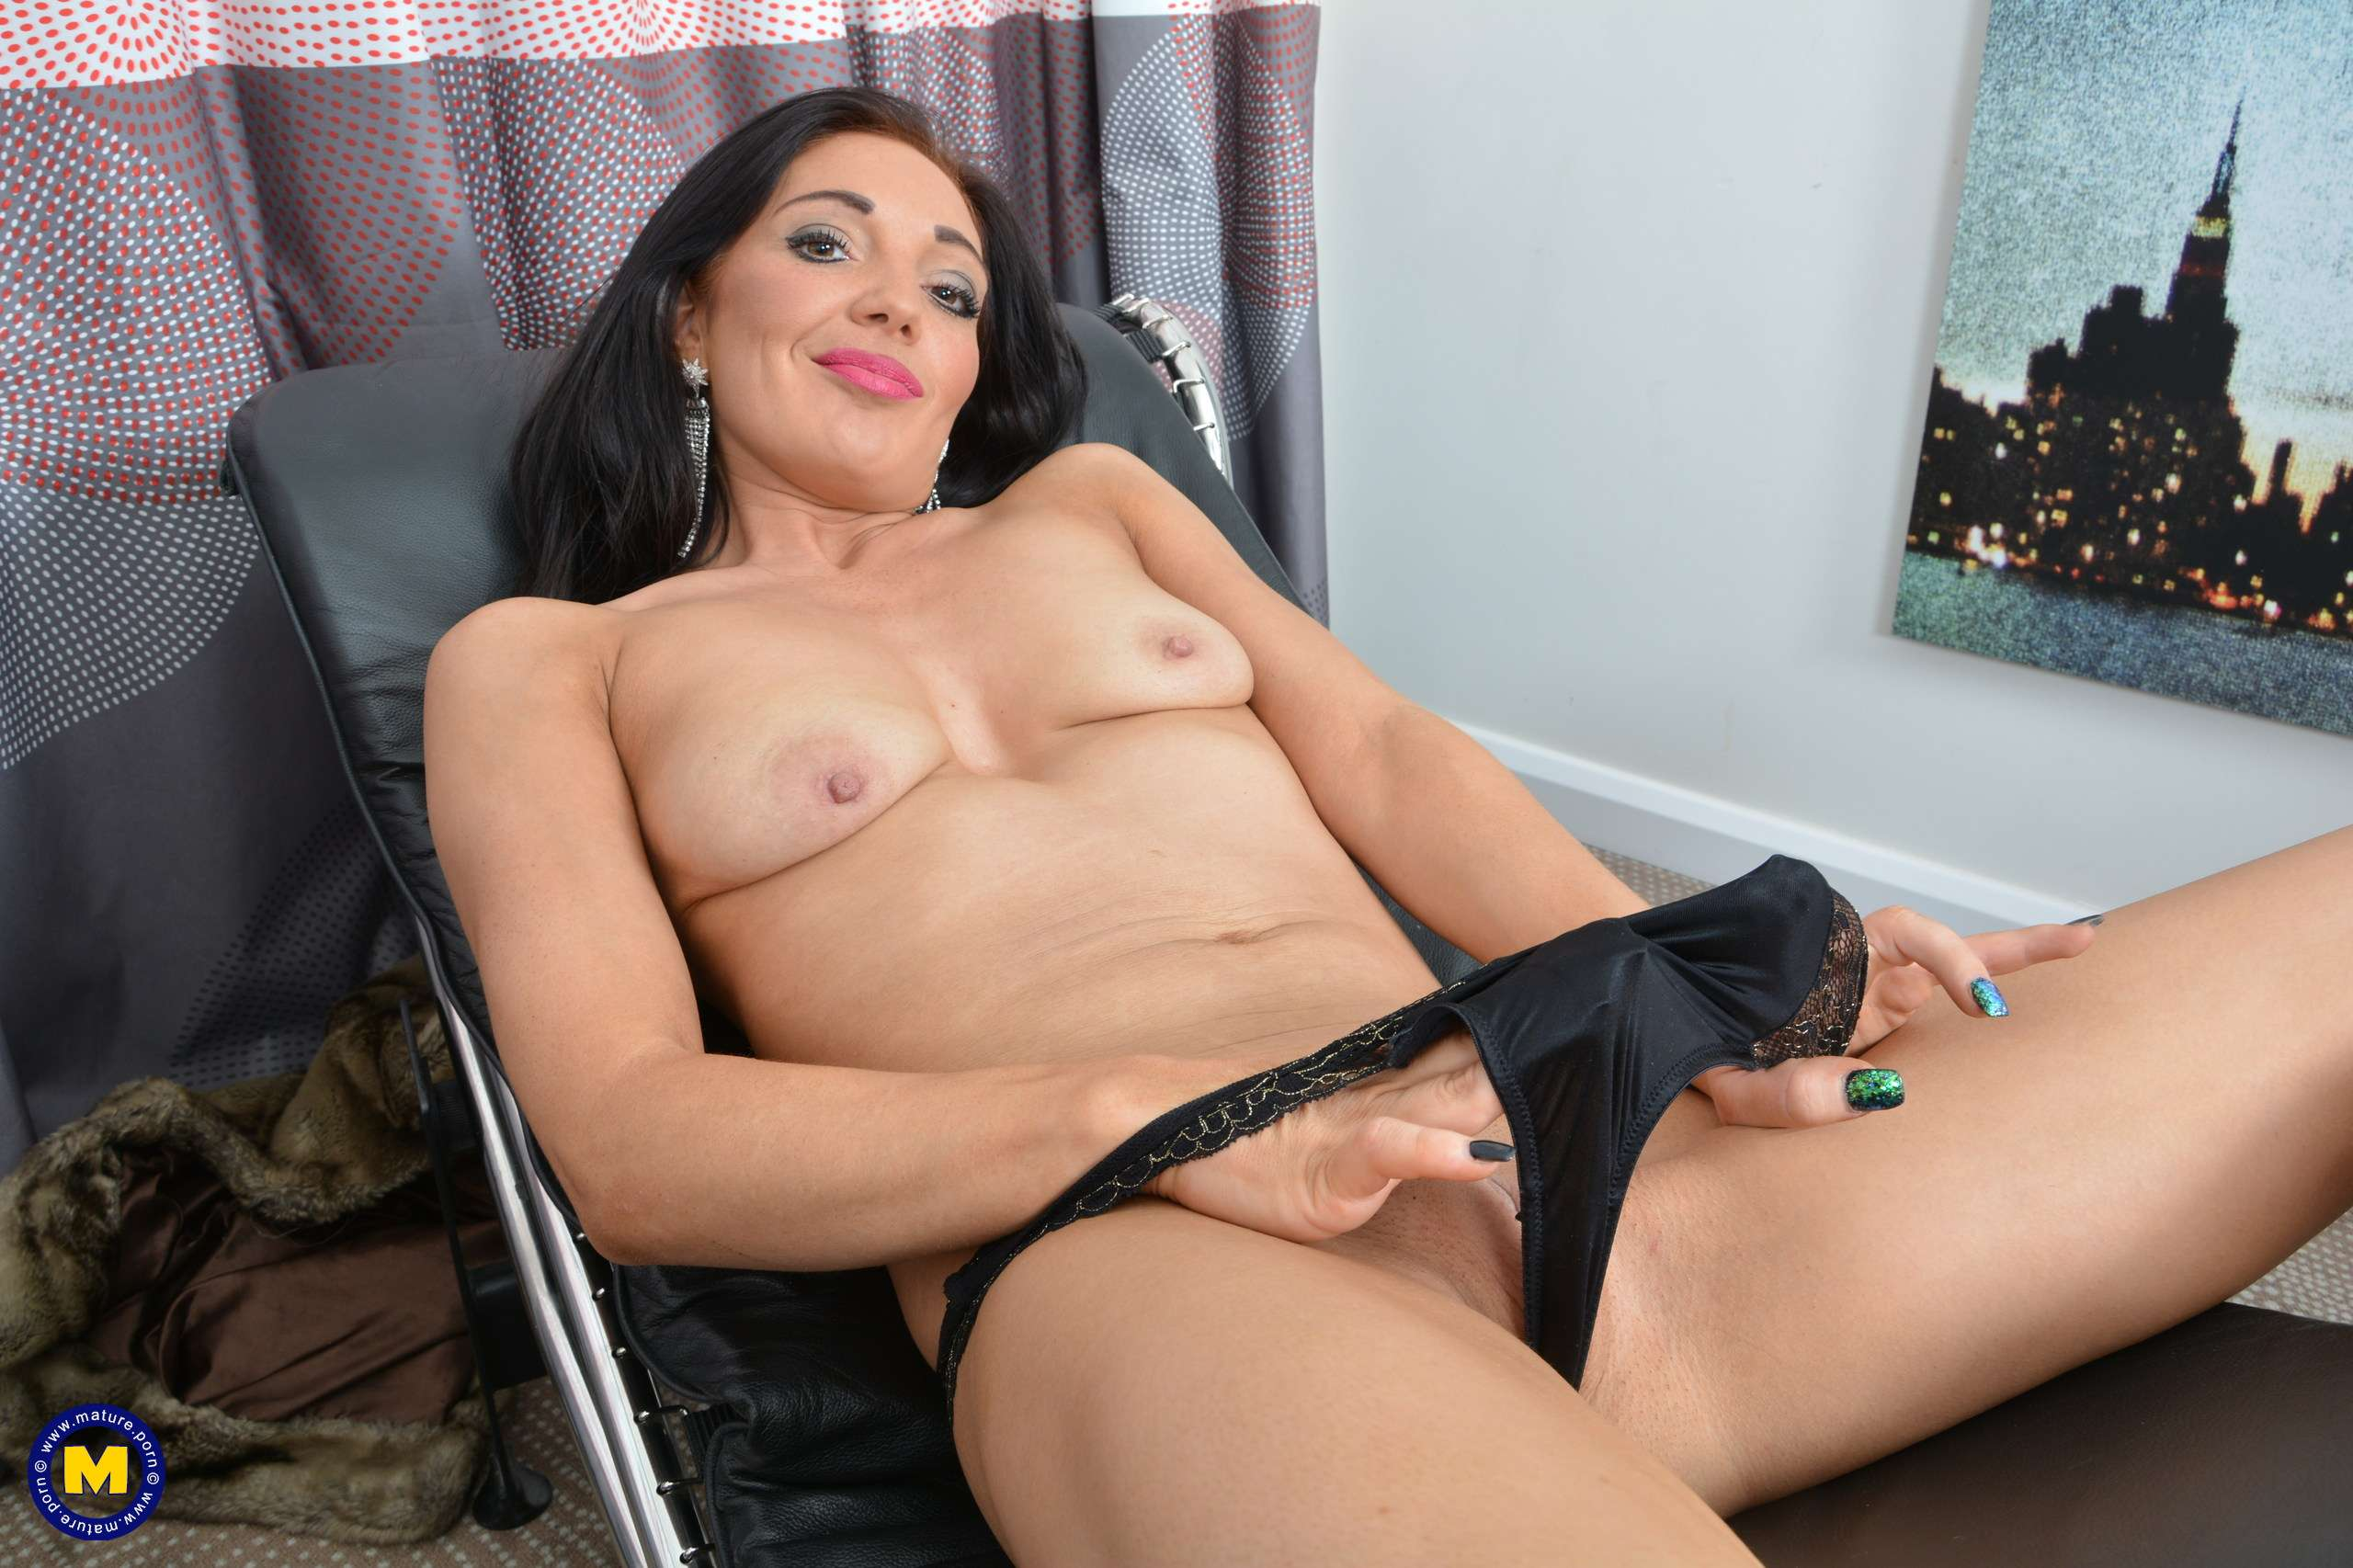 This Naughty Milf Plays With Her Wet Pussy At Mature.nl